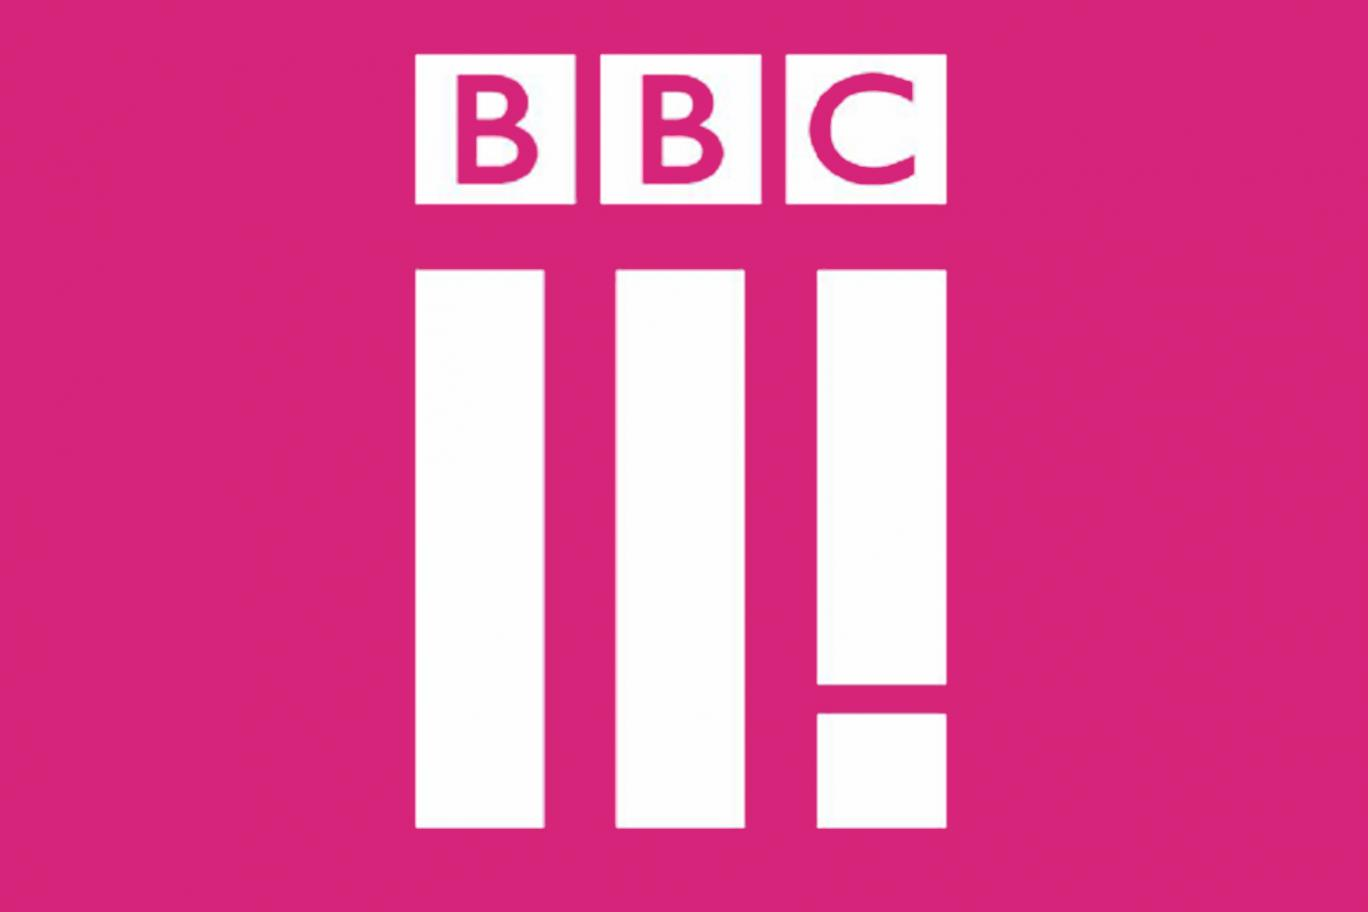 The new BBC3